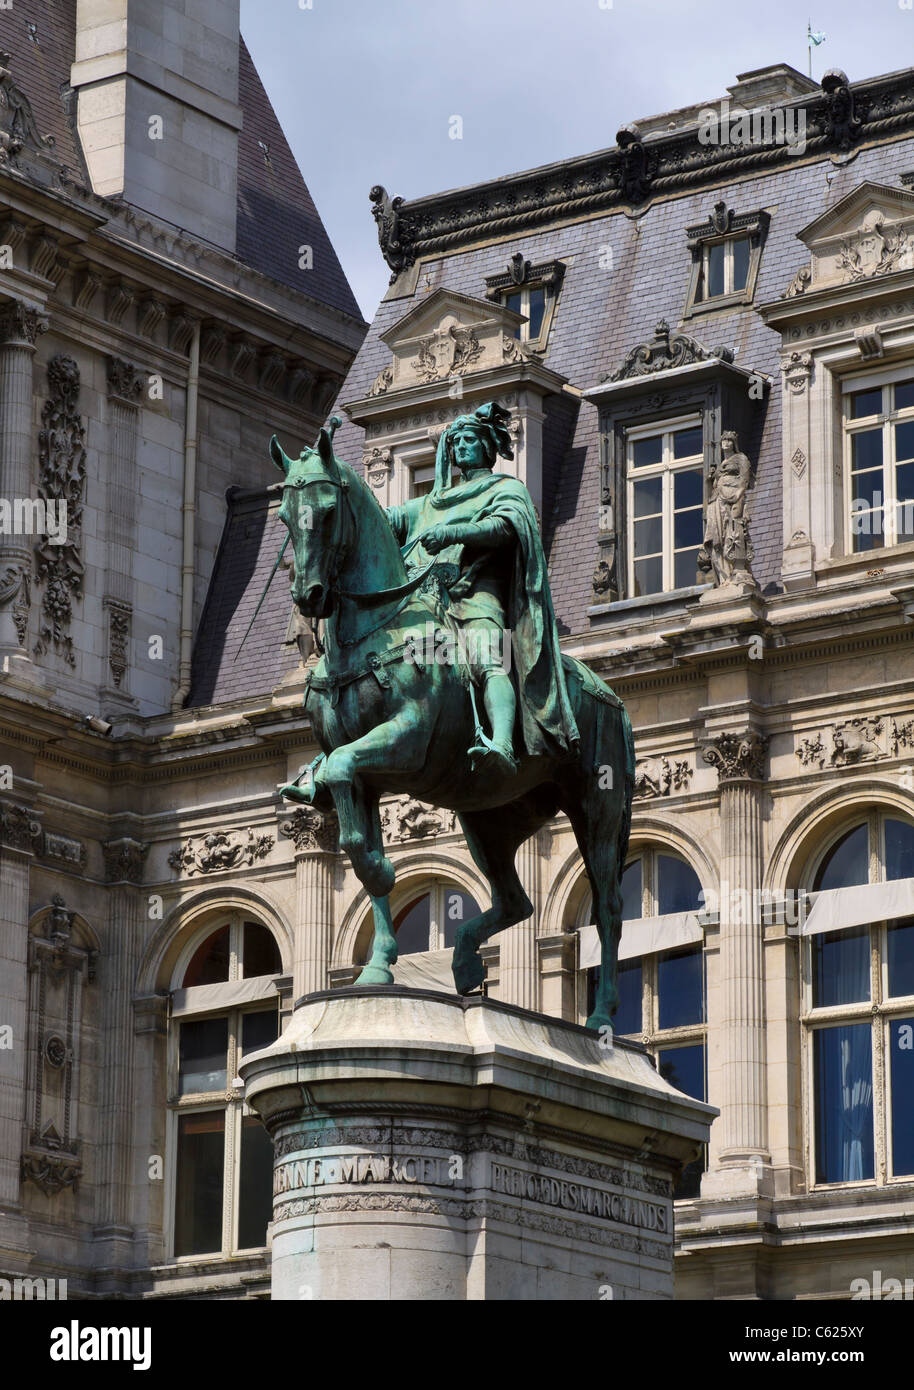 Equestrian statue of Étienne Marcel on the south side of the Hotel de Ville, Paris. - Stock Image